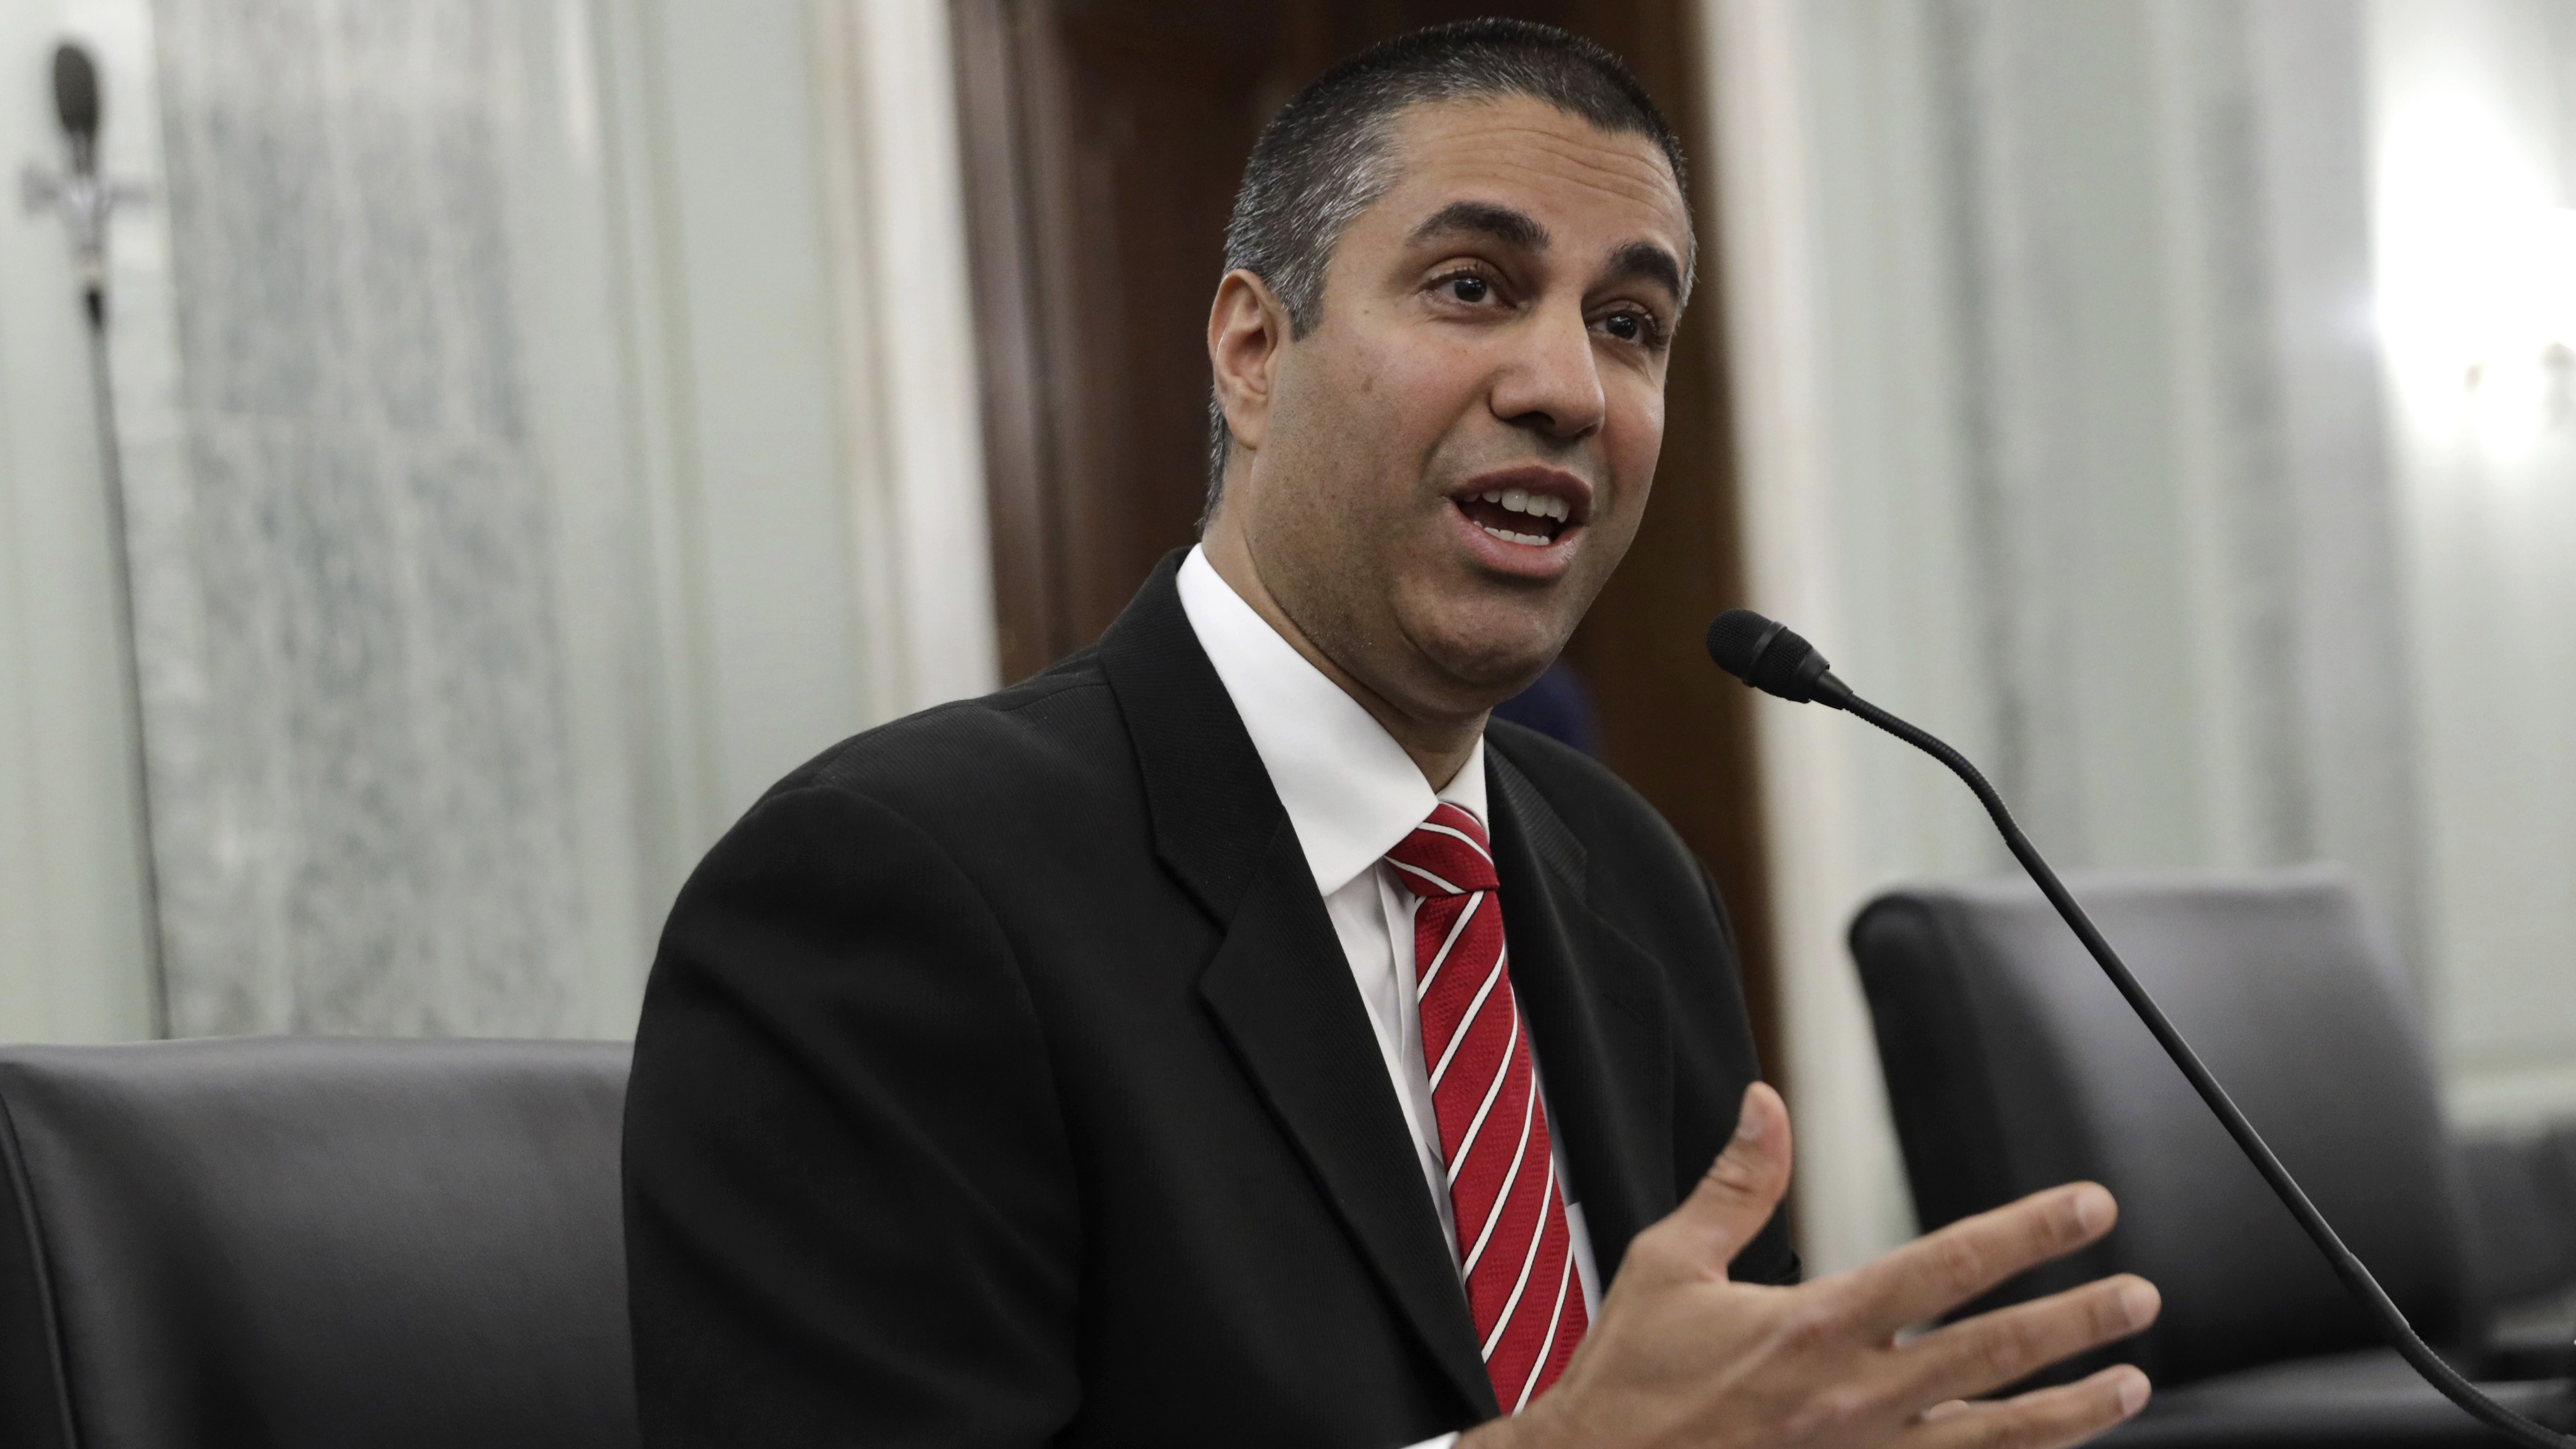 variety.com - Todd Spangler - Outgoing FCC Chair Ajit Pai Praised by Industry Orgs, Slammed as 'Disastrous' by Critics